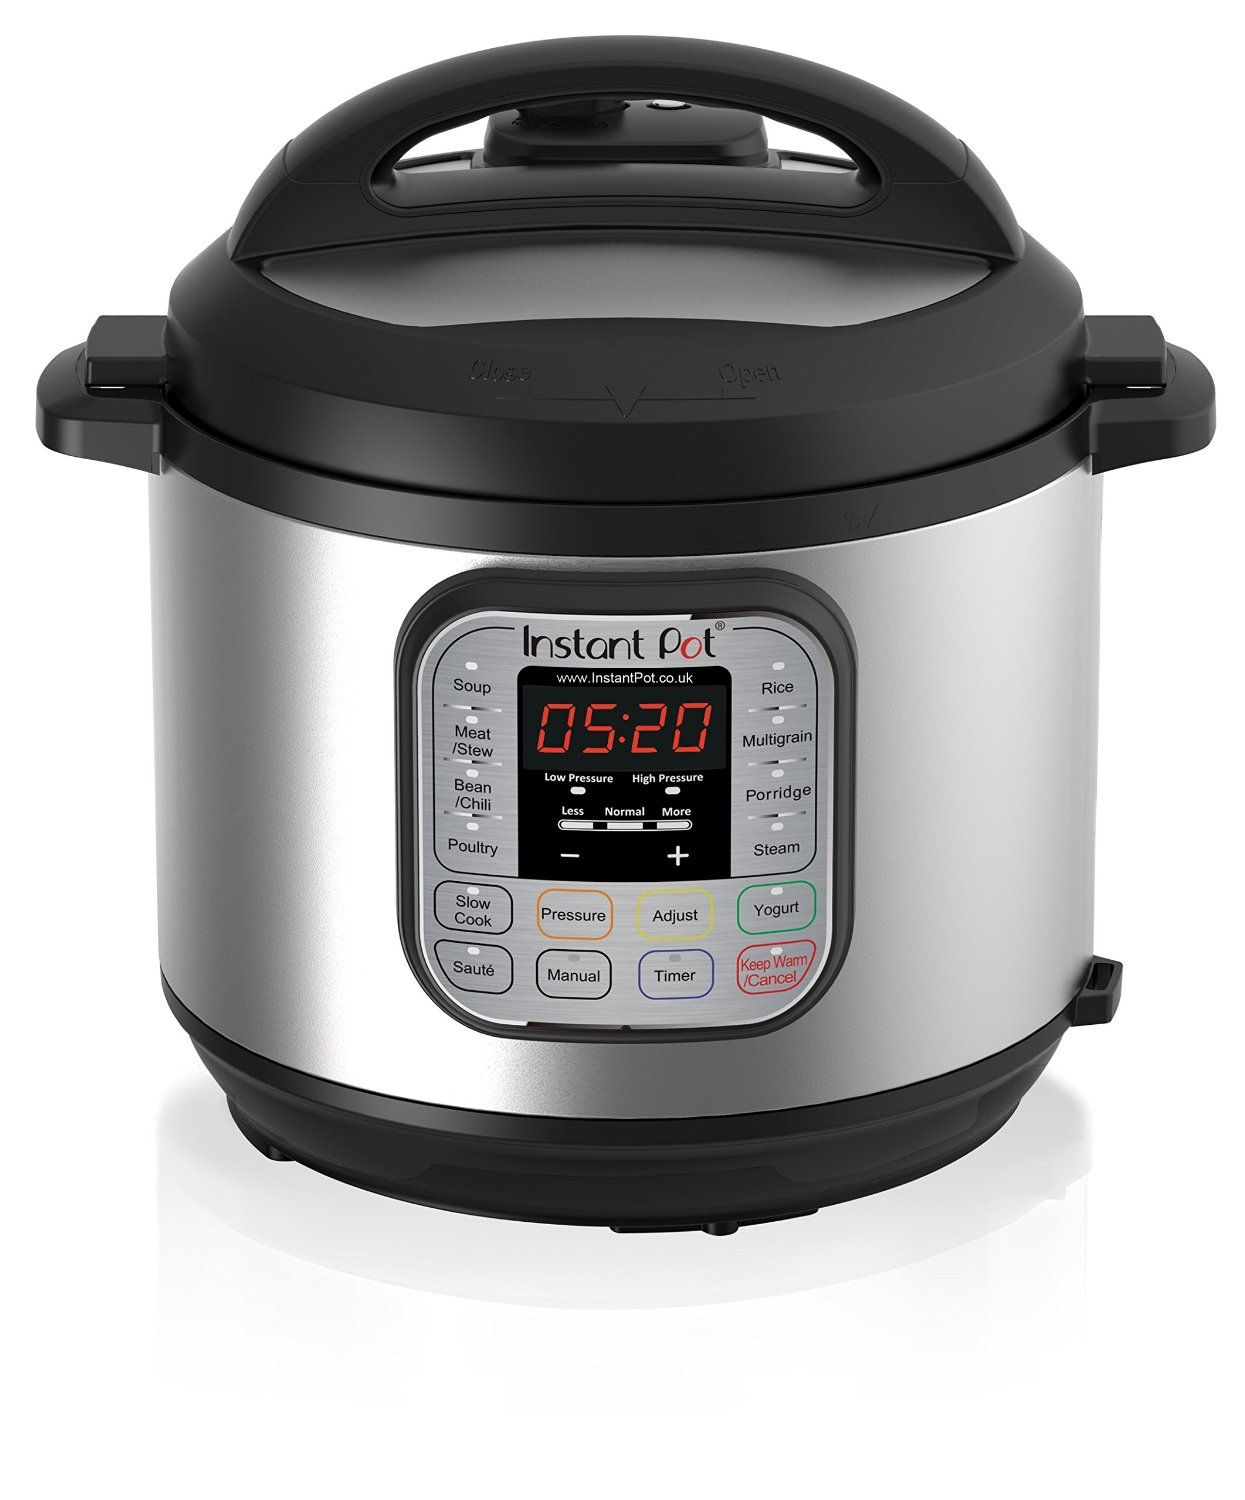 Küche Amazon Instant Pot Ip-duo60 Programmierbarer 7-in-1,elektro